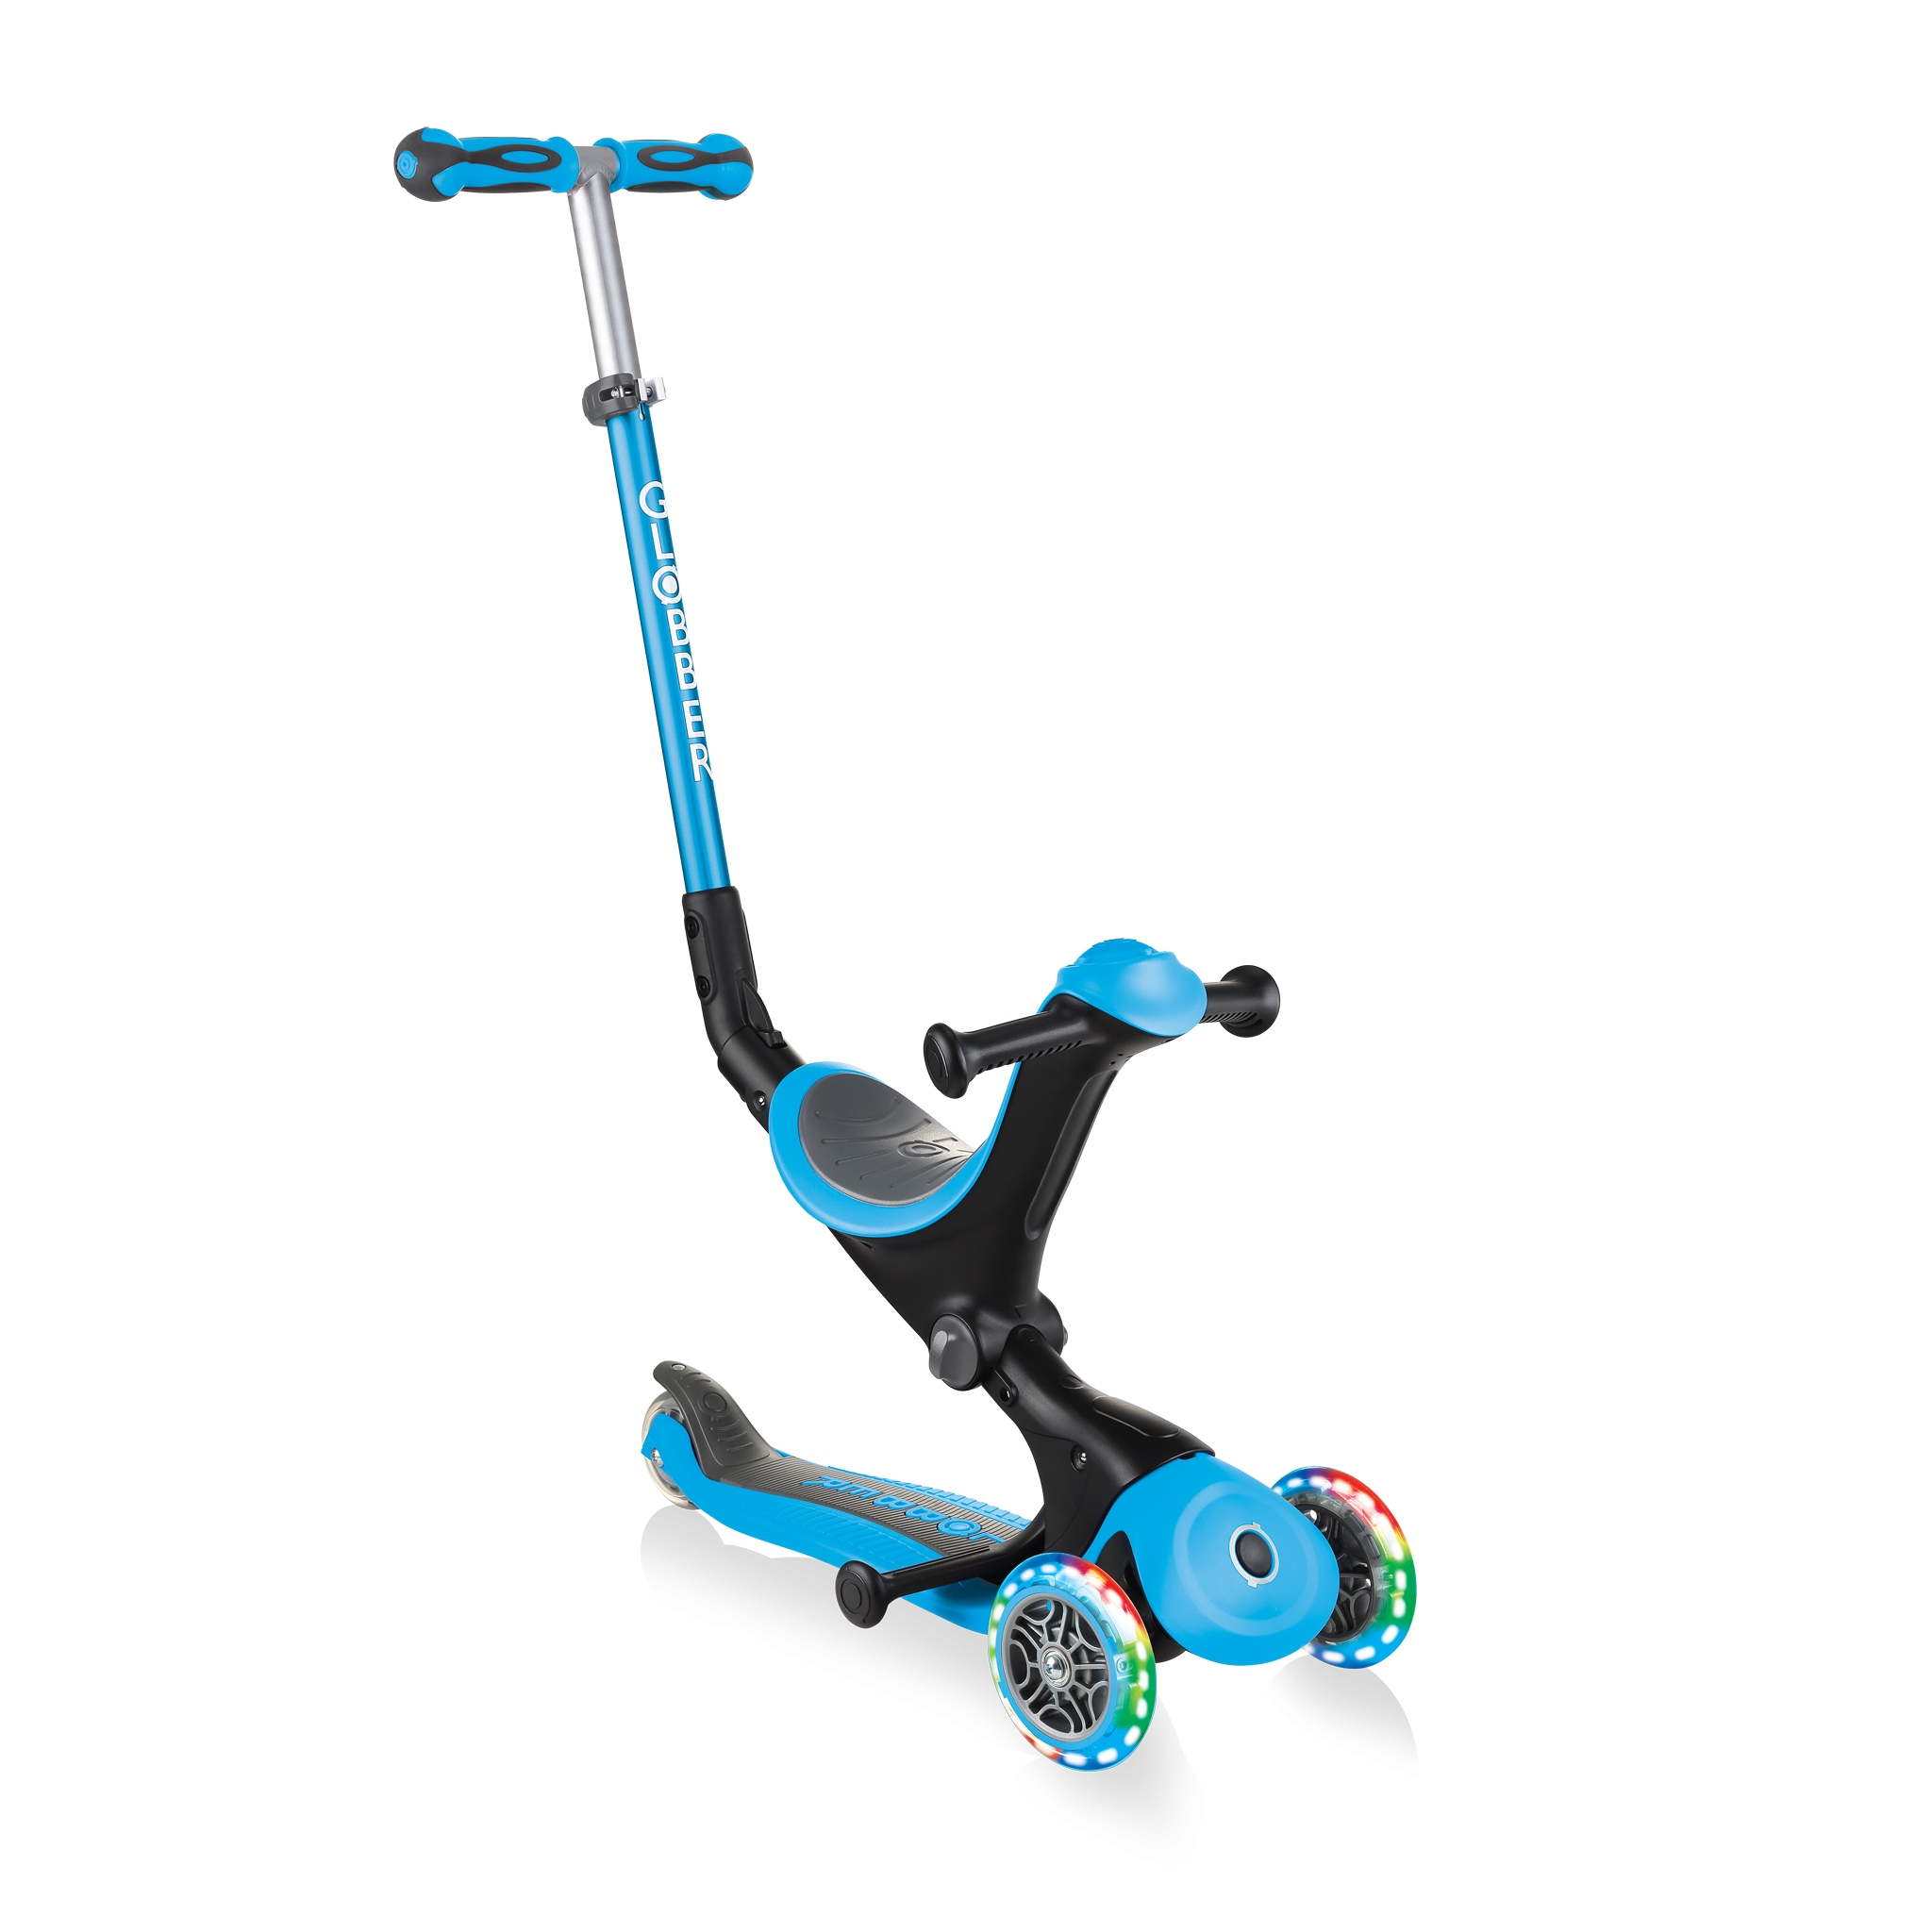 GO-UP-DELUXE-LIGHTS-ride-on-walking-bike-scooter-with-light-up-wheels-sky-blue 0